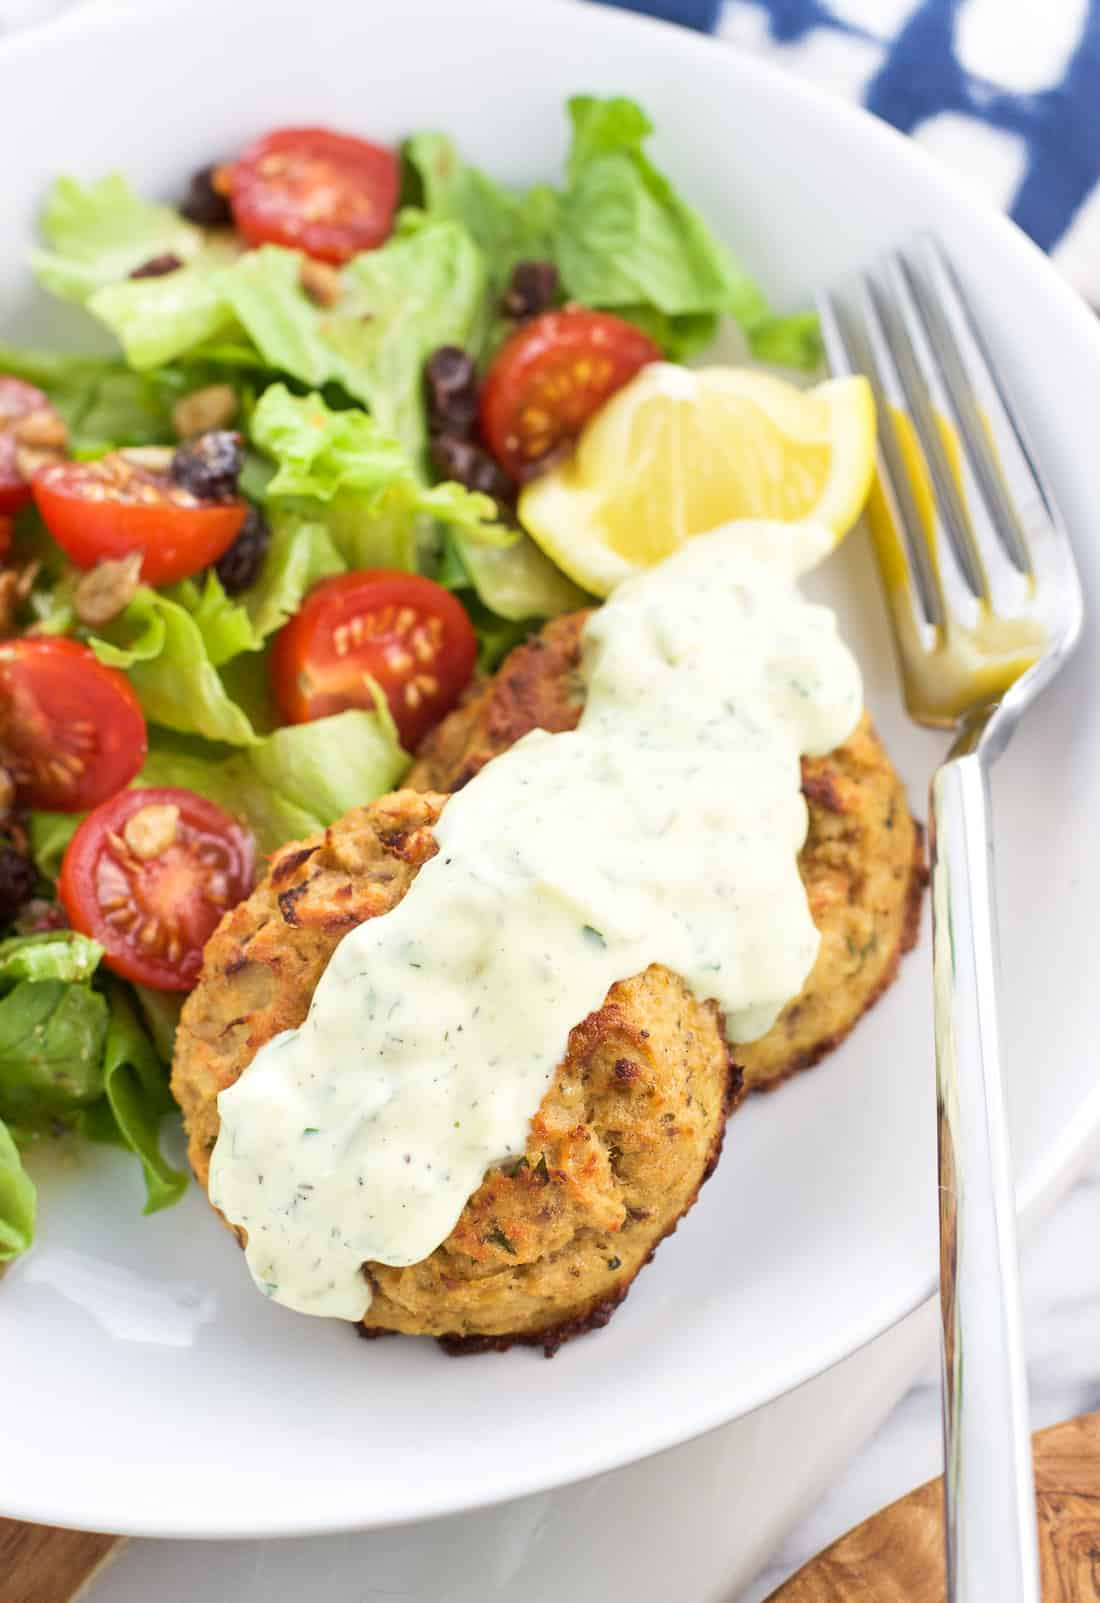 Two baked tuna cakes on a plate with a drizzle of tartar sauce, a lemon wedge, and a side salad